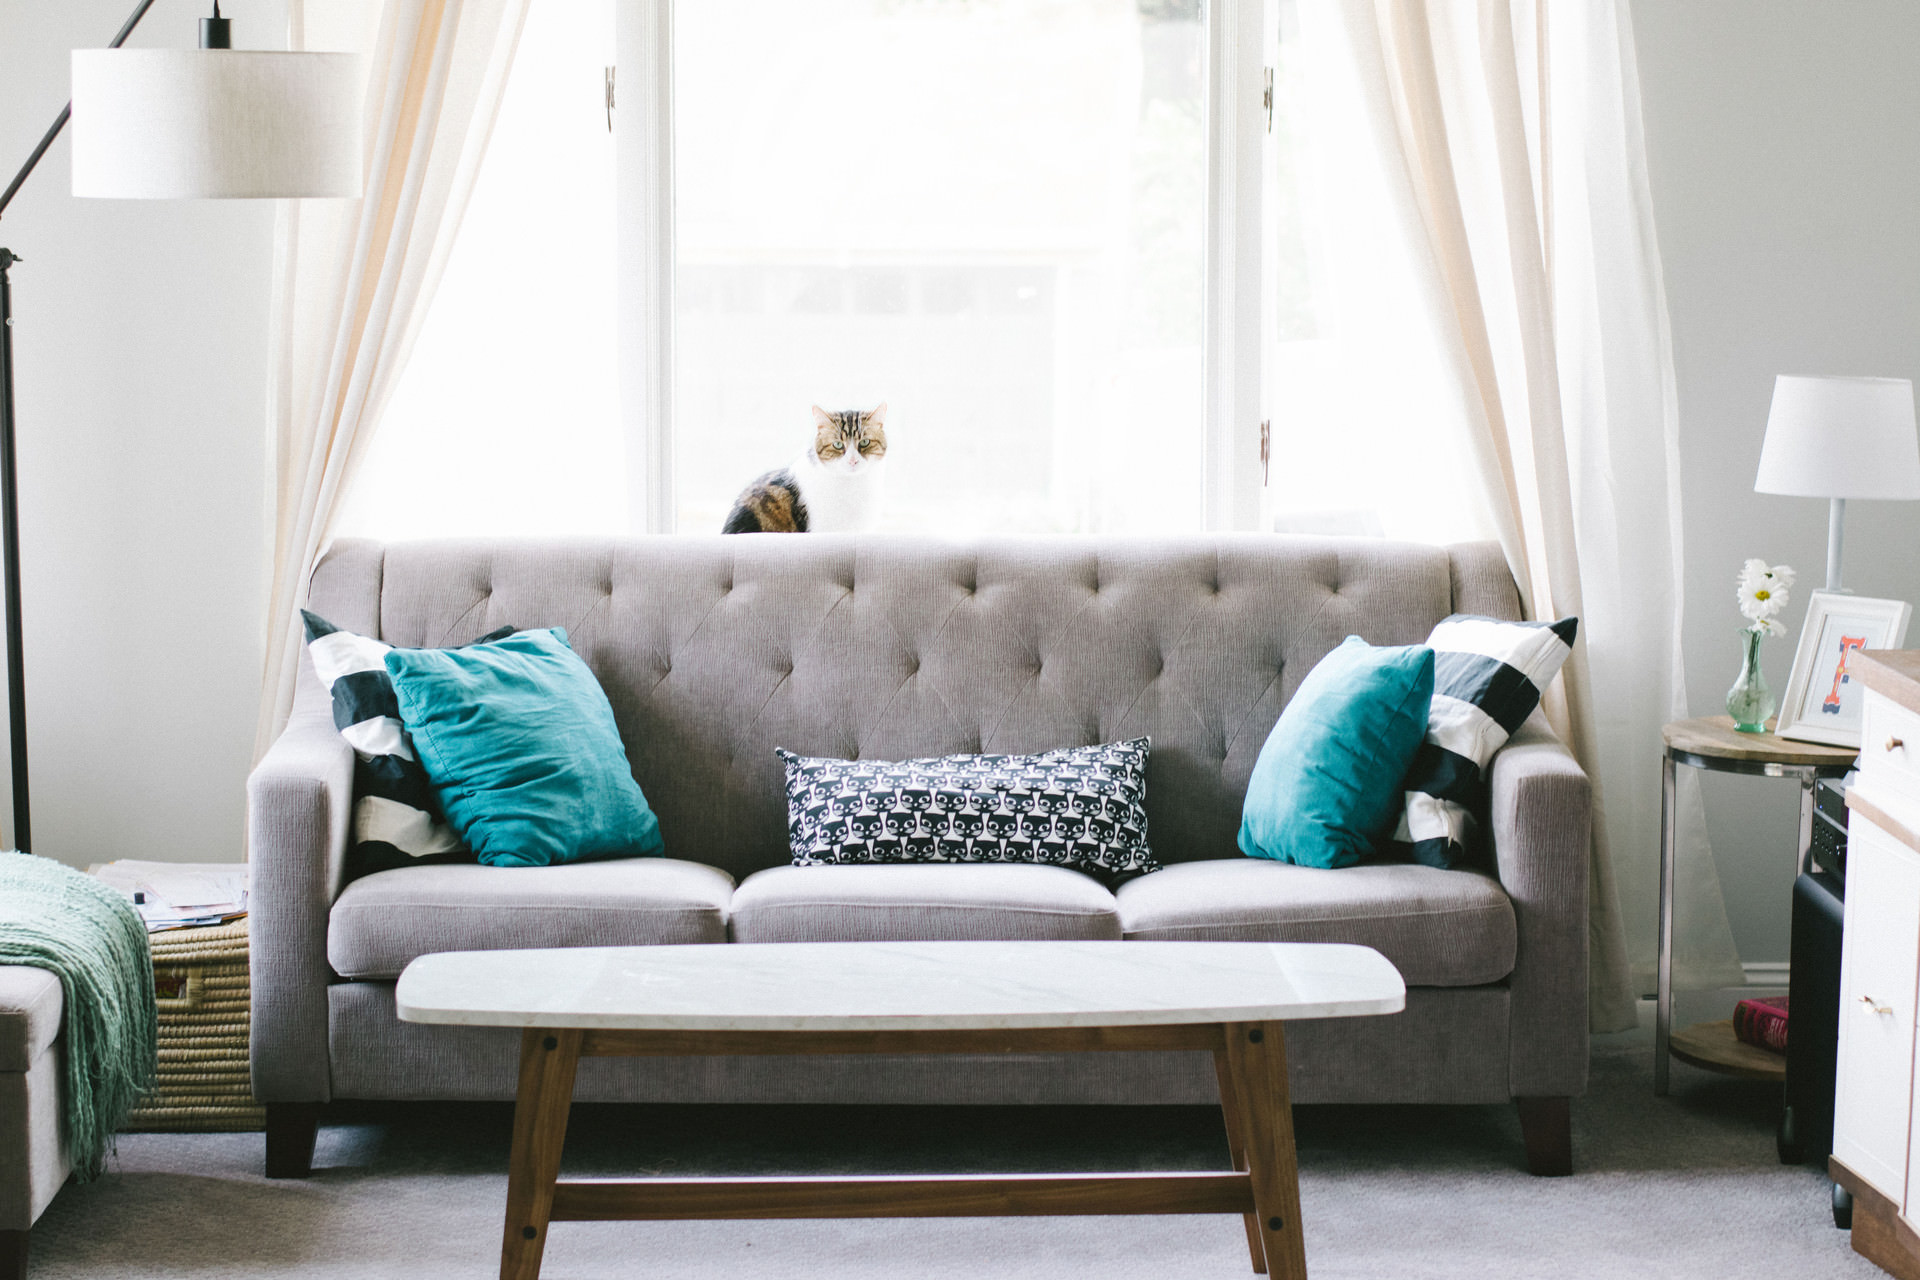 Exceptional Glasgow Cleaners   for your home or office    Call 0141 212 2500    CLICK TO ARRANGE A CLEAN